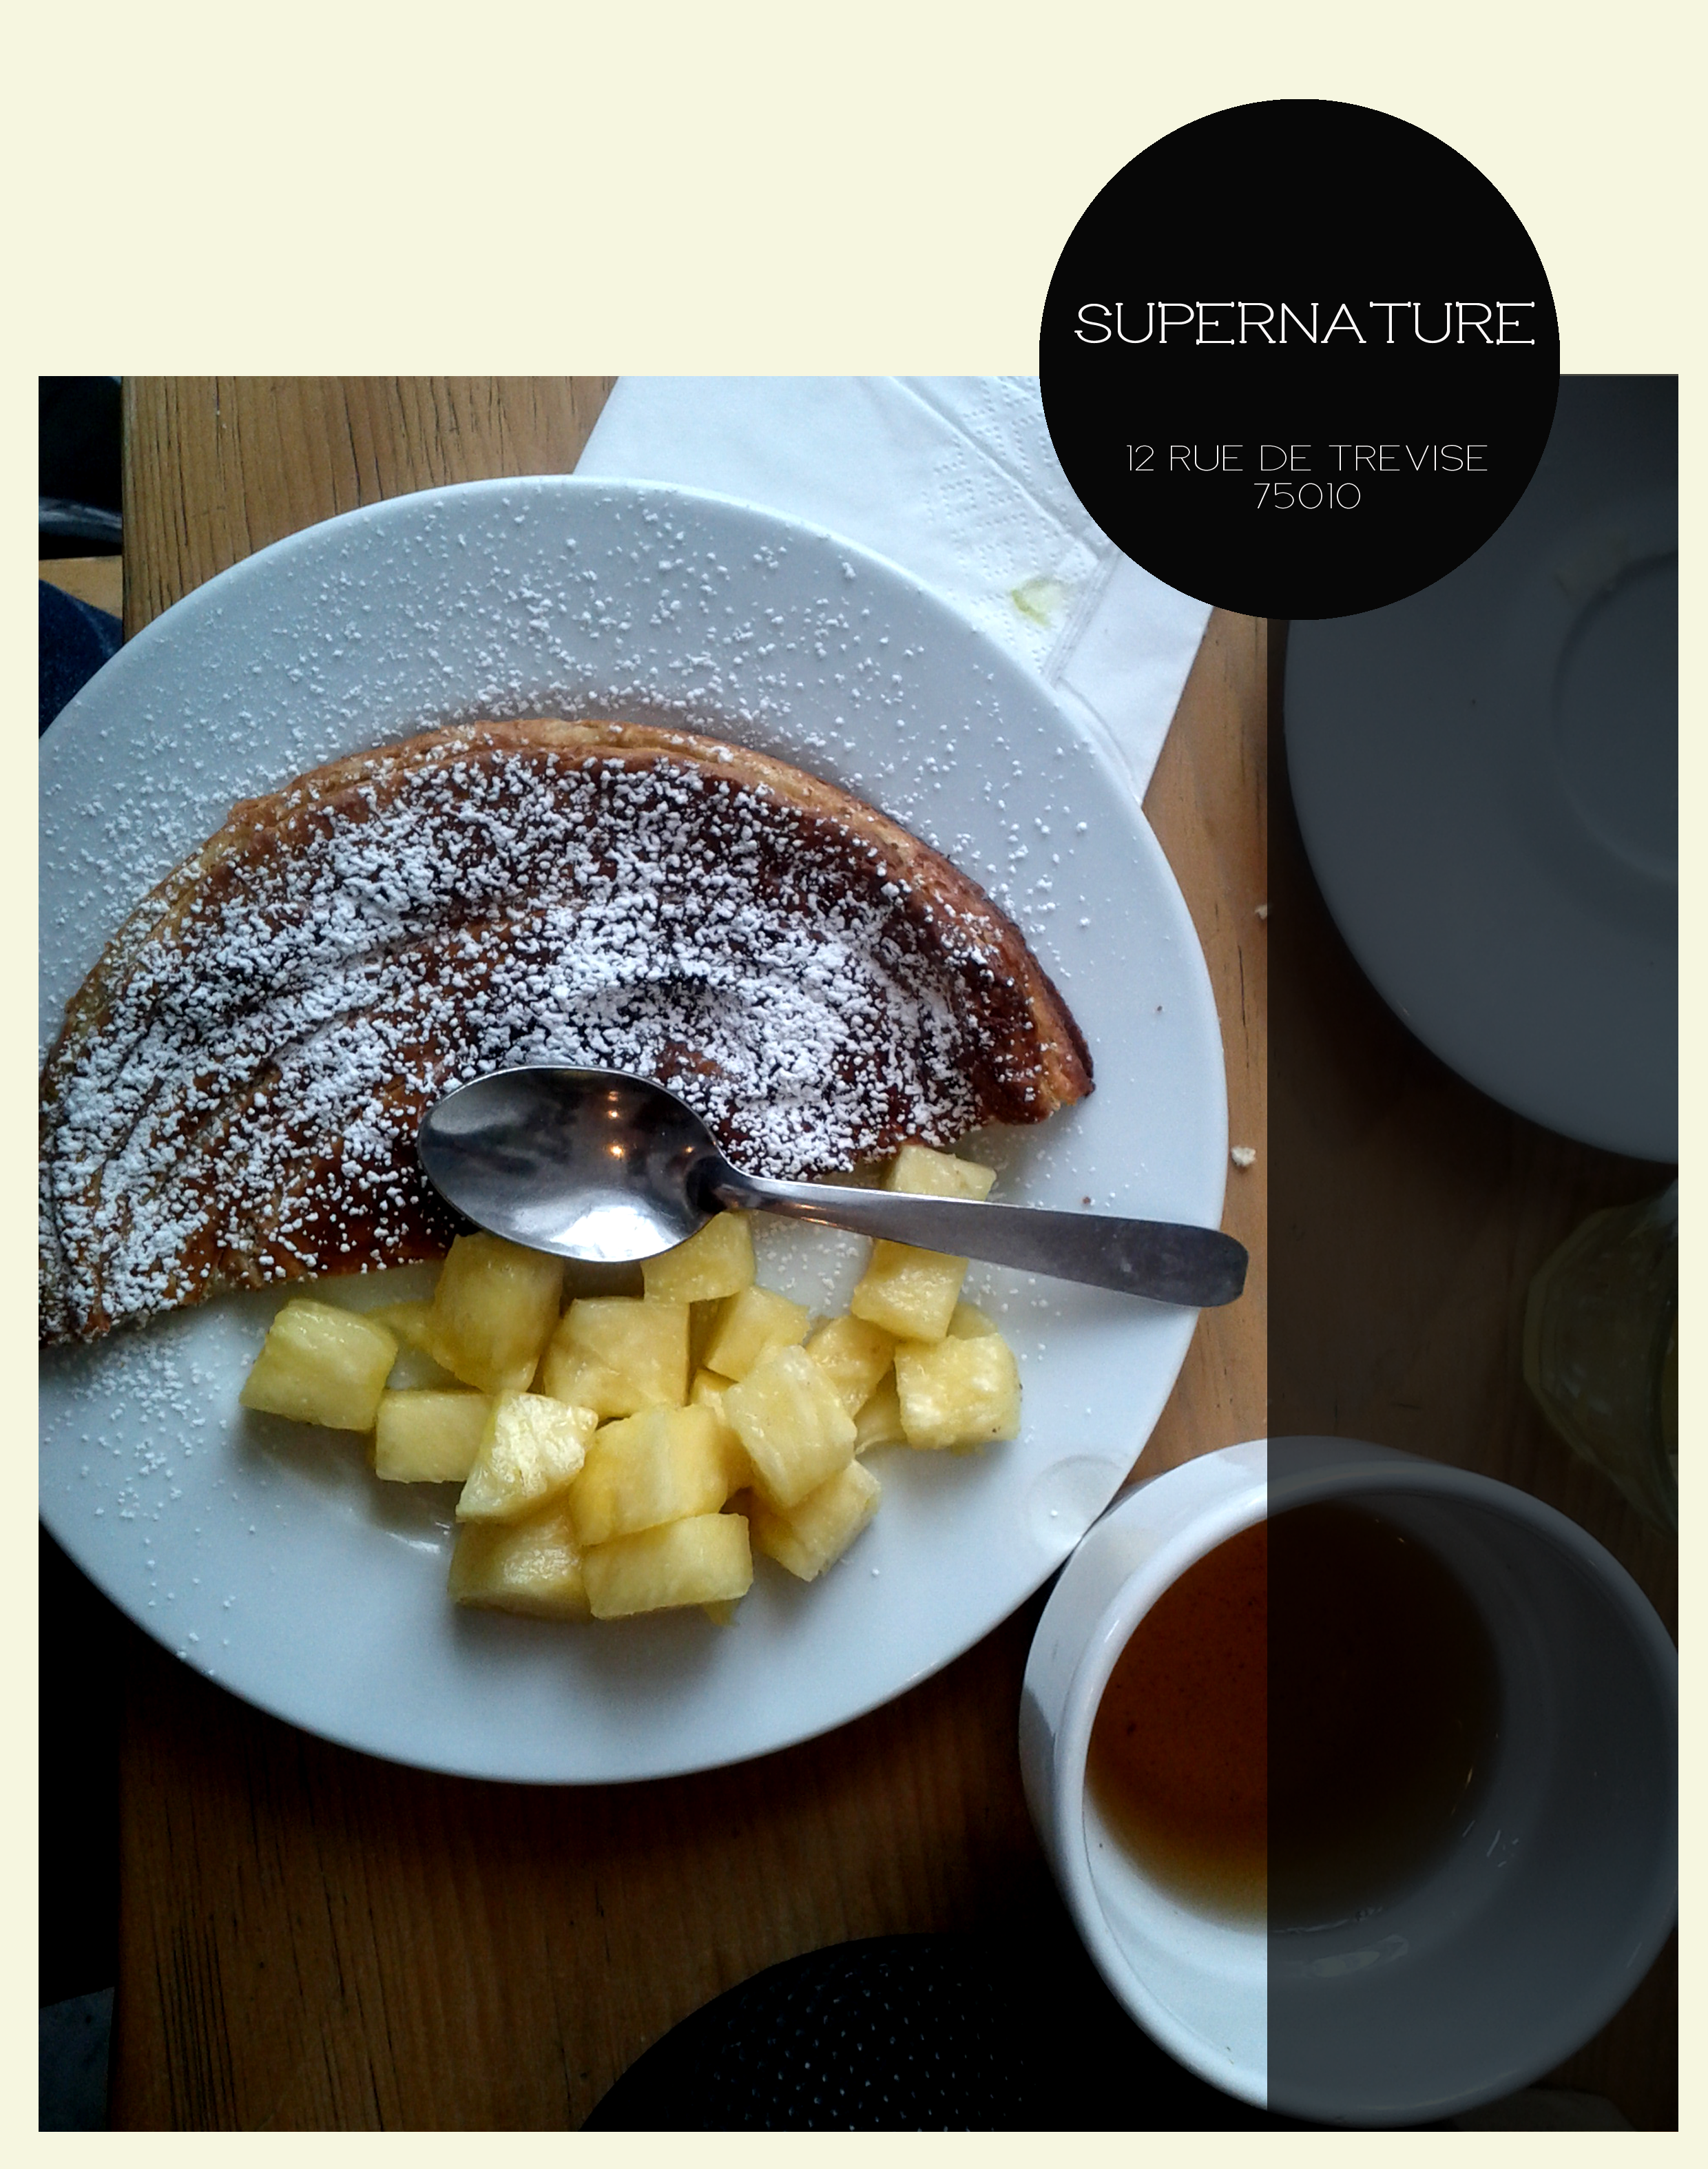 supernature-brunch-paris-bio-by-le-polyedre_1p